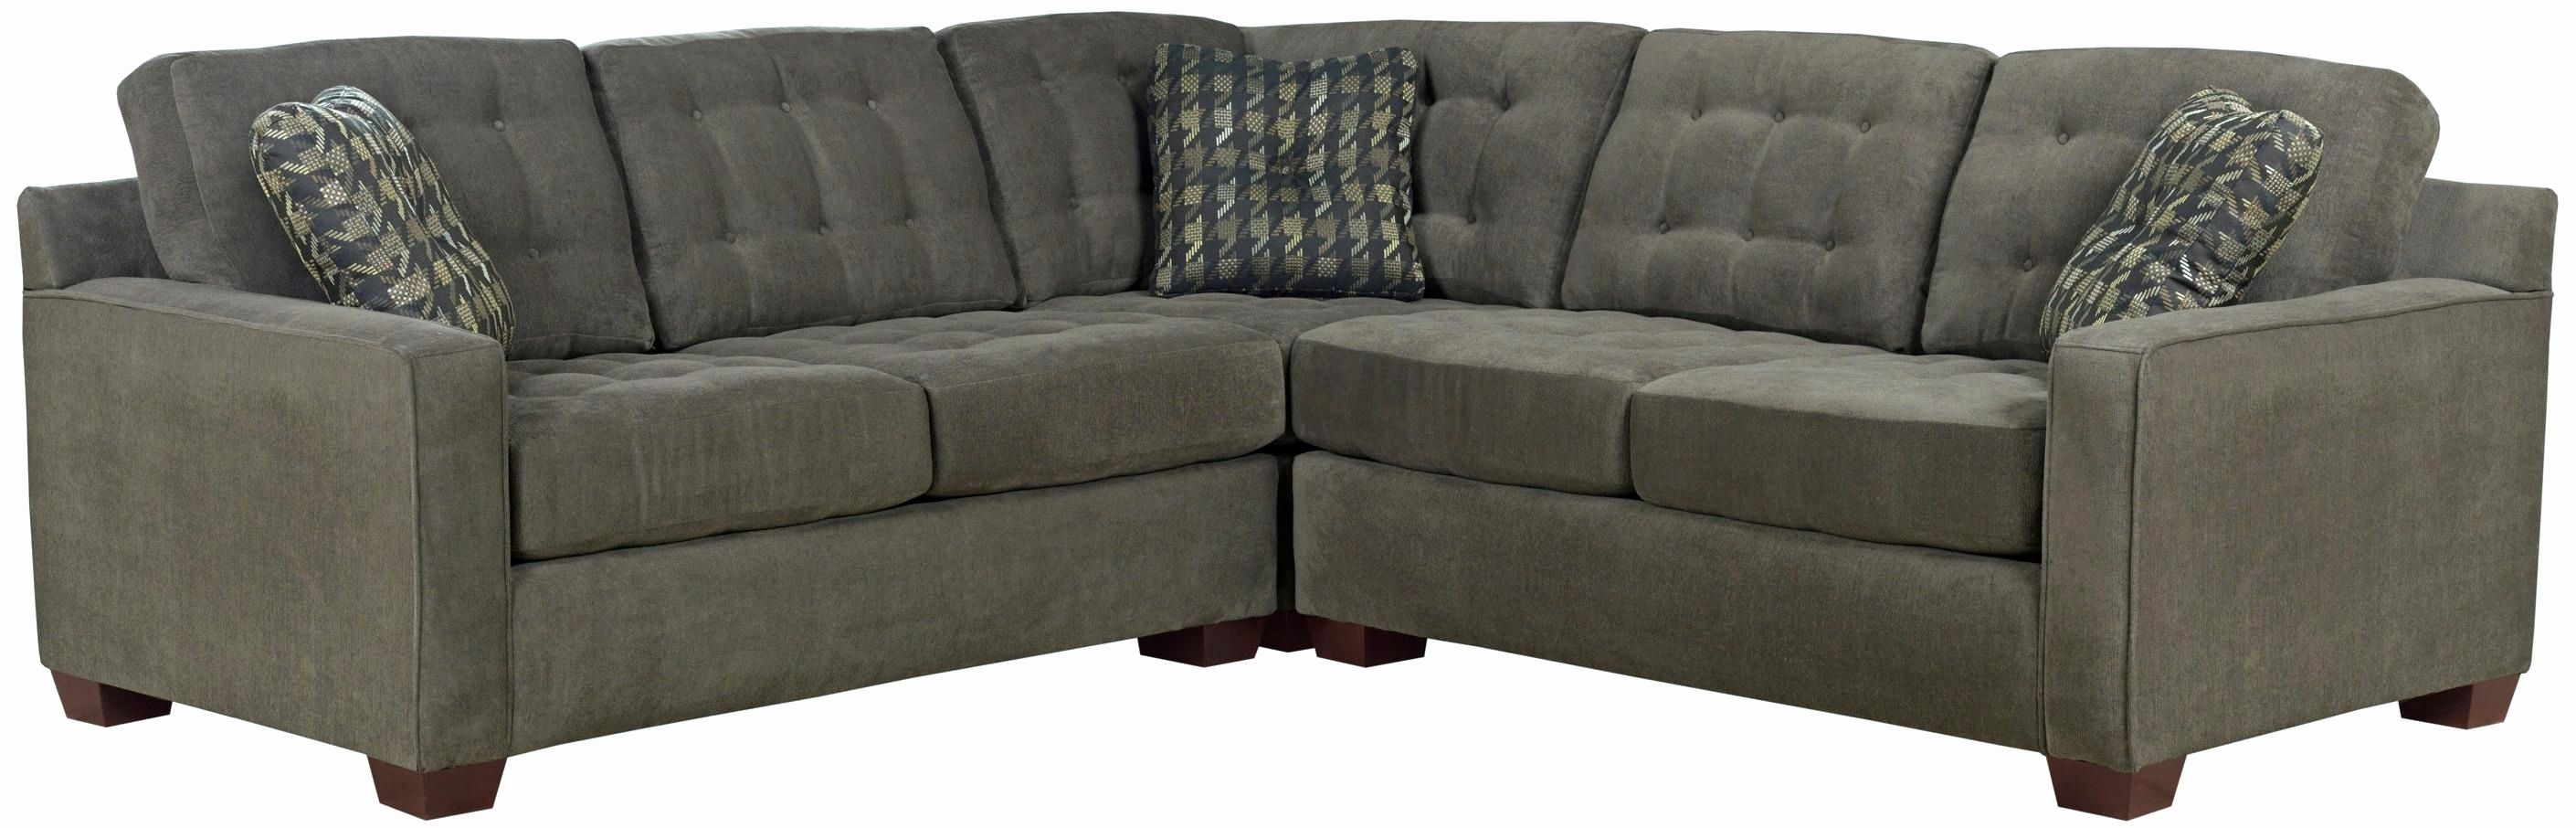 Lovely Contemporary L Shaped Sofa Art Broyhill Furniture Tribeca regarding Sectional Sofas at Broyhill (Image 13 of 15)